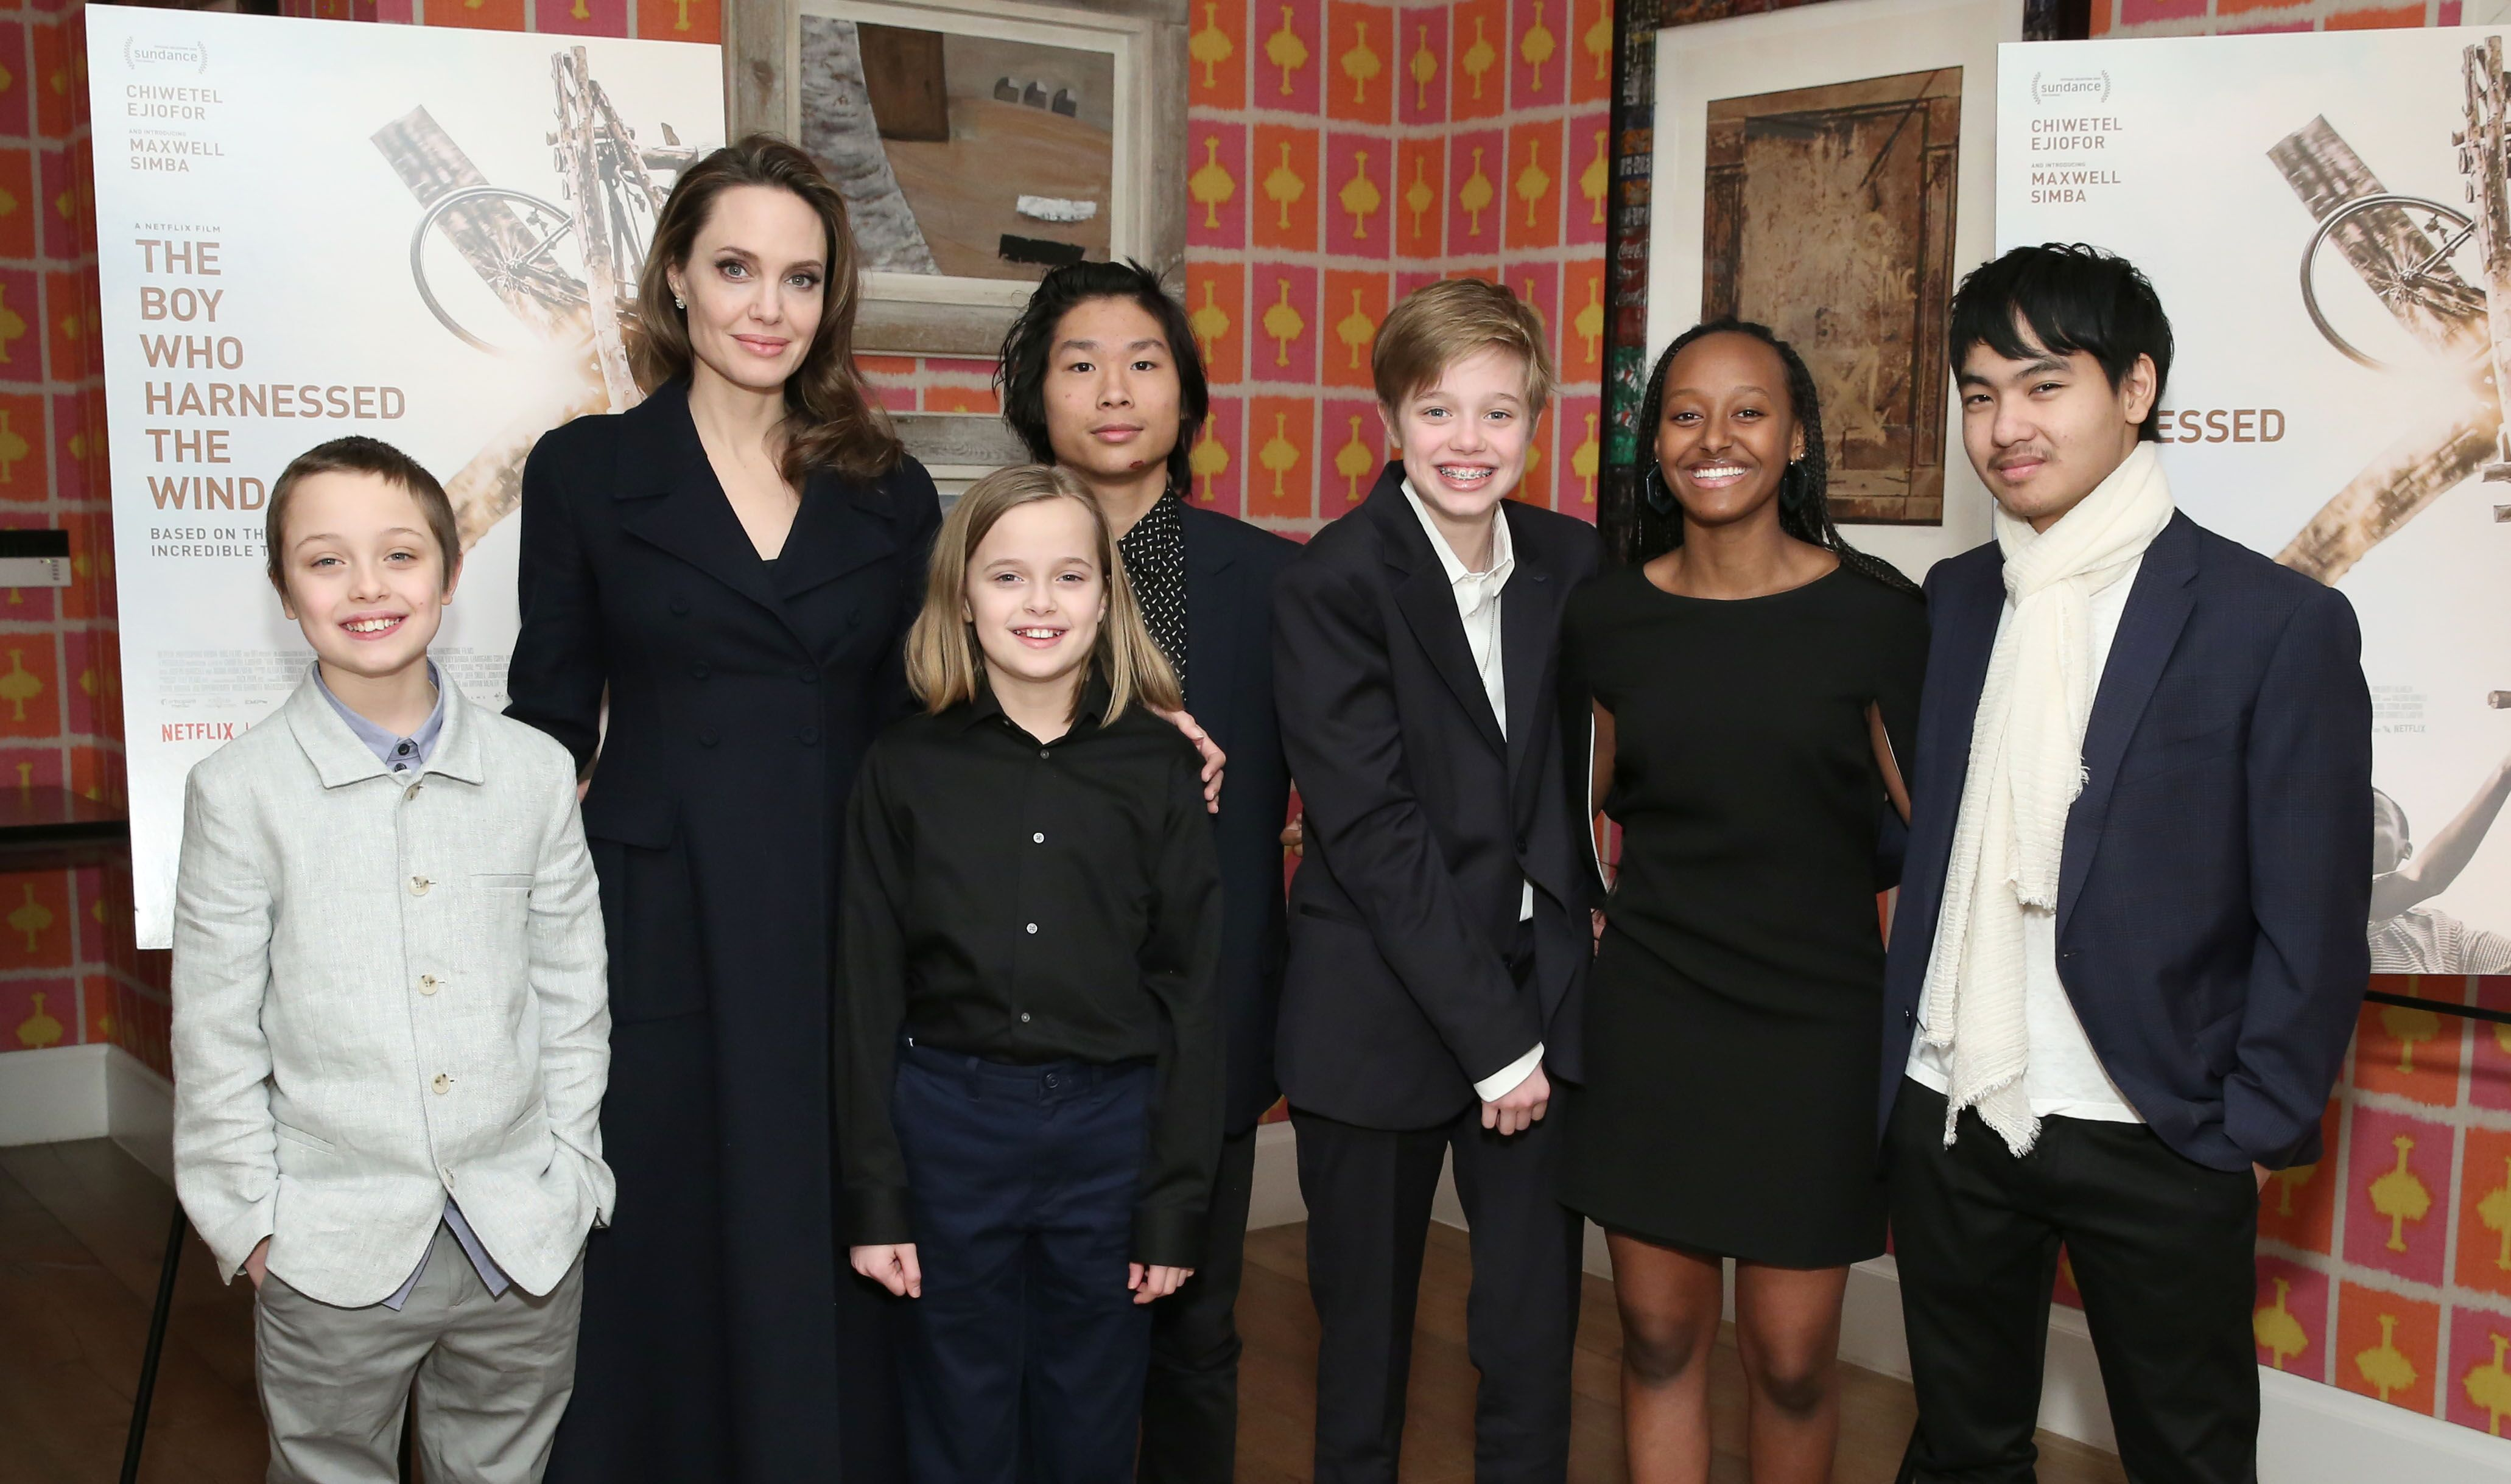 """Angelina Jolie with children Knox, Vivienne, Pax, Shiloh, Zahara and Maddox Jolie-Pitt attend """"The Boy Who Harnessed The Wind"""" screening in  2019 